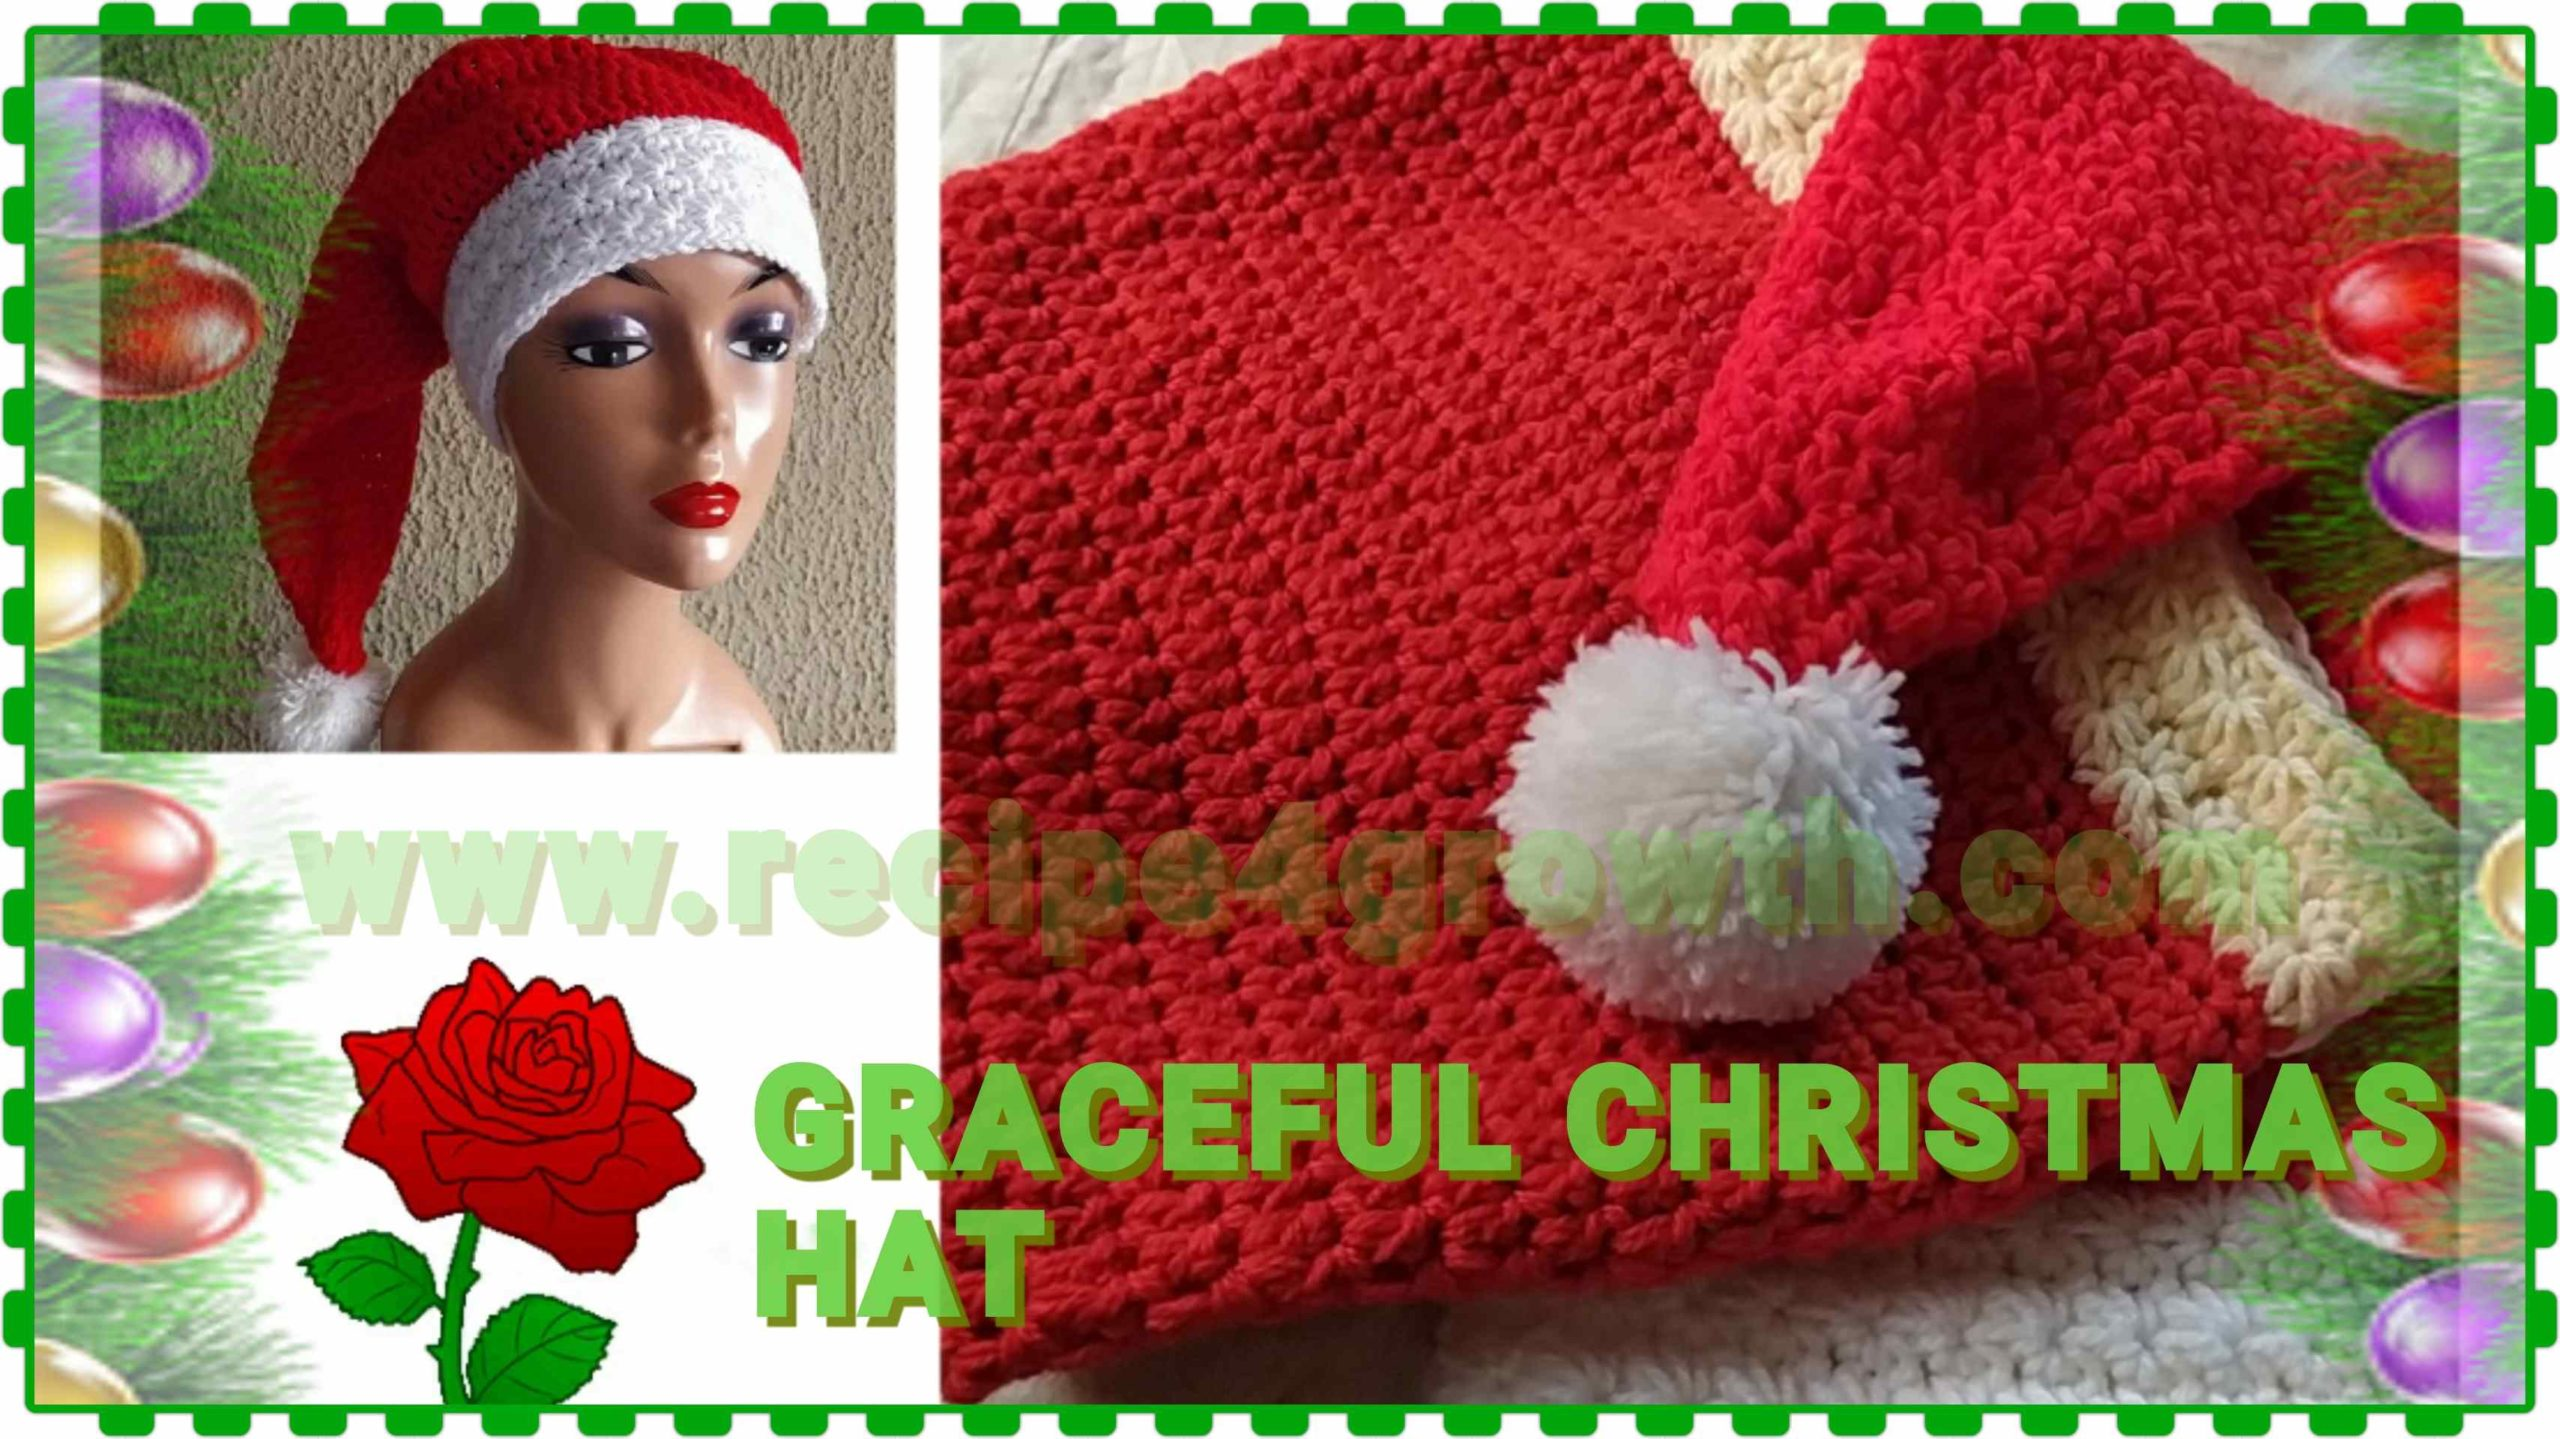 HOW TO CROCHET GRACEFUL CHRISTMAS HAT